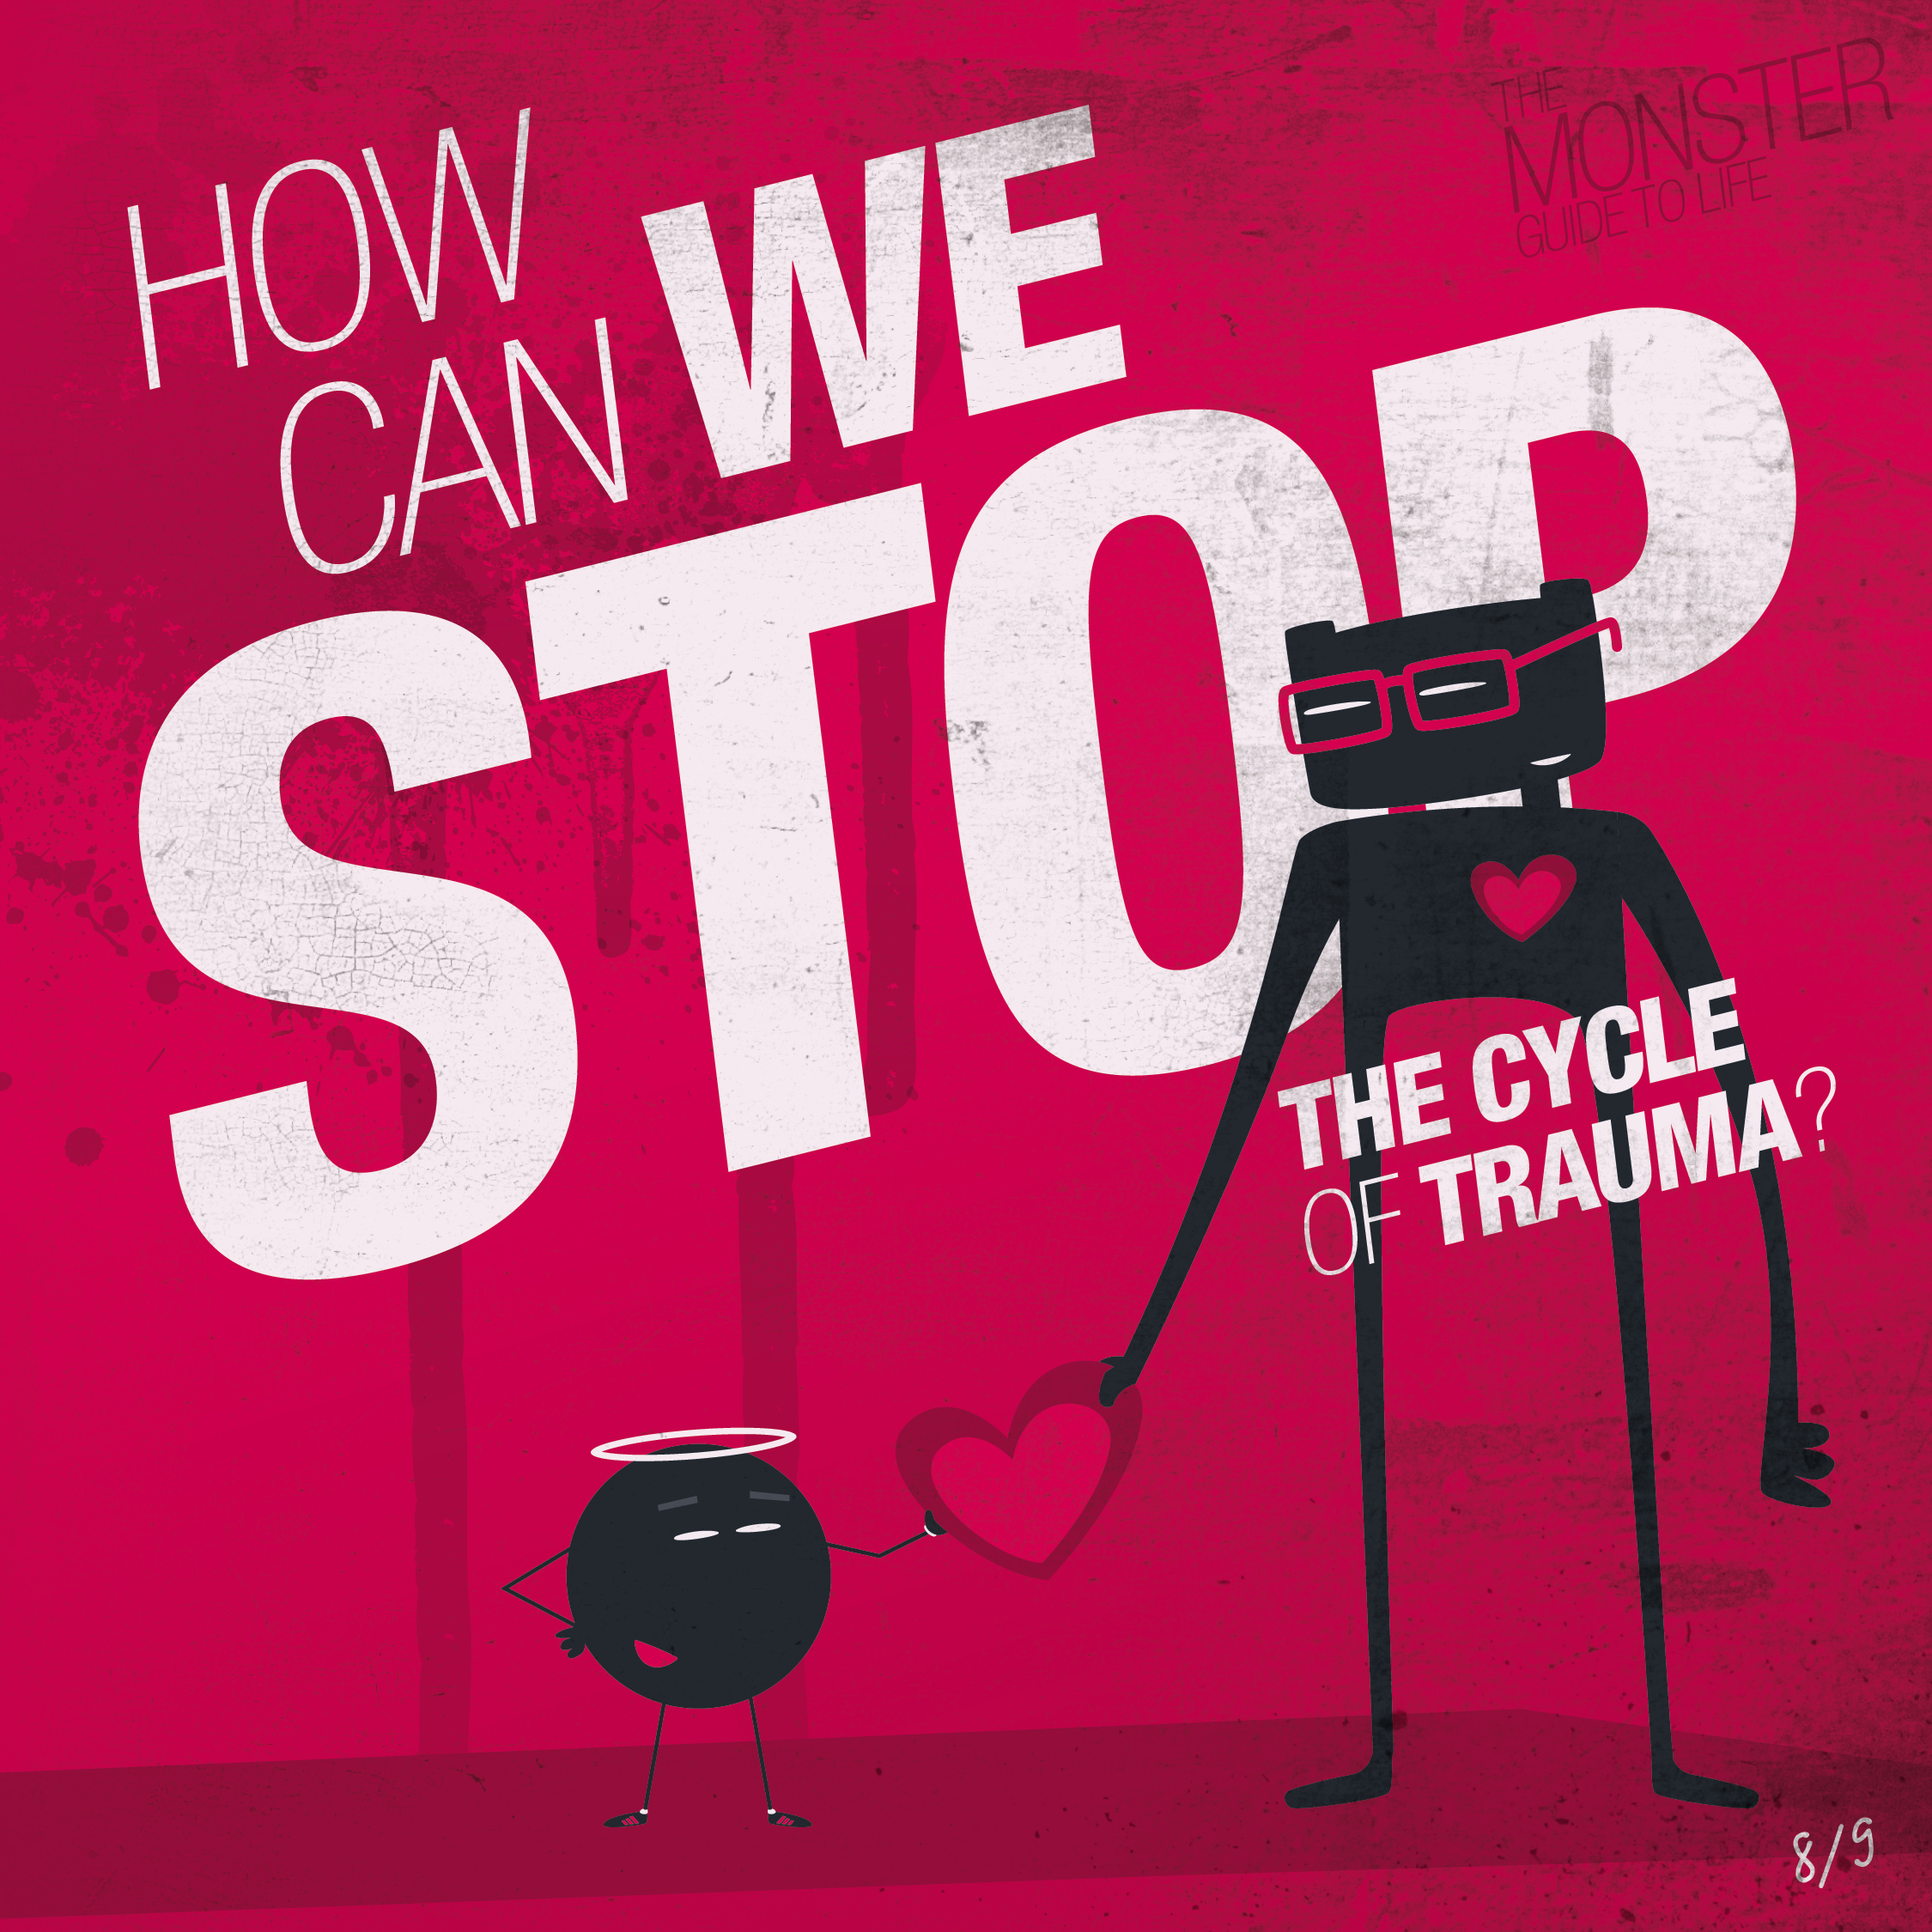 How can we stop the cycle of trauma?